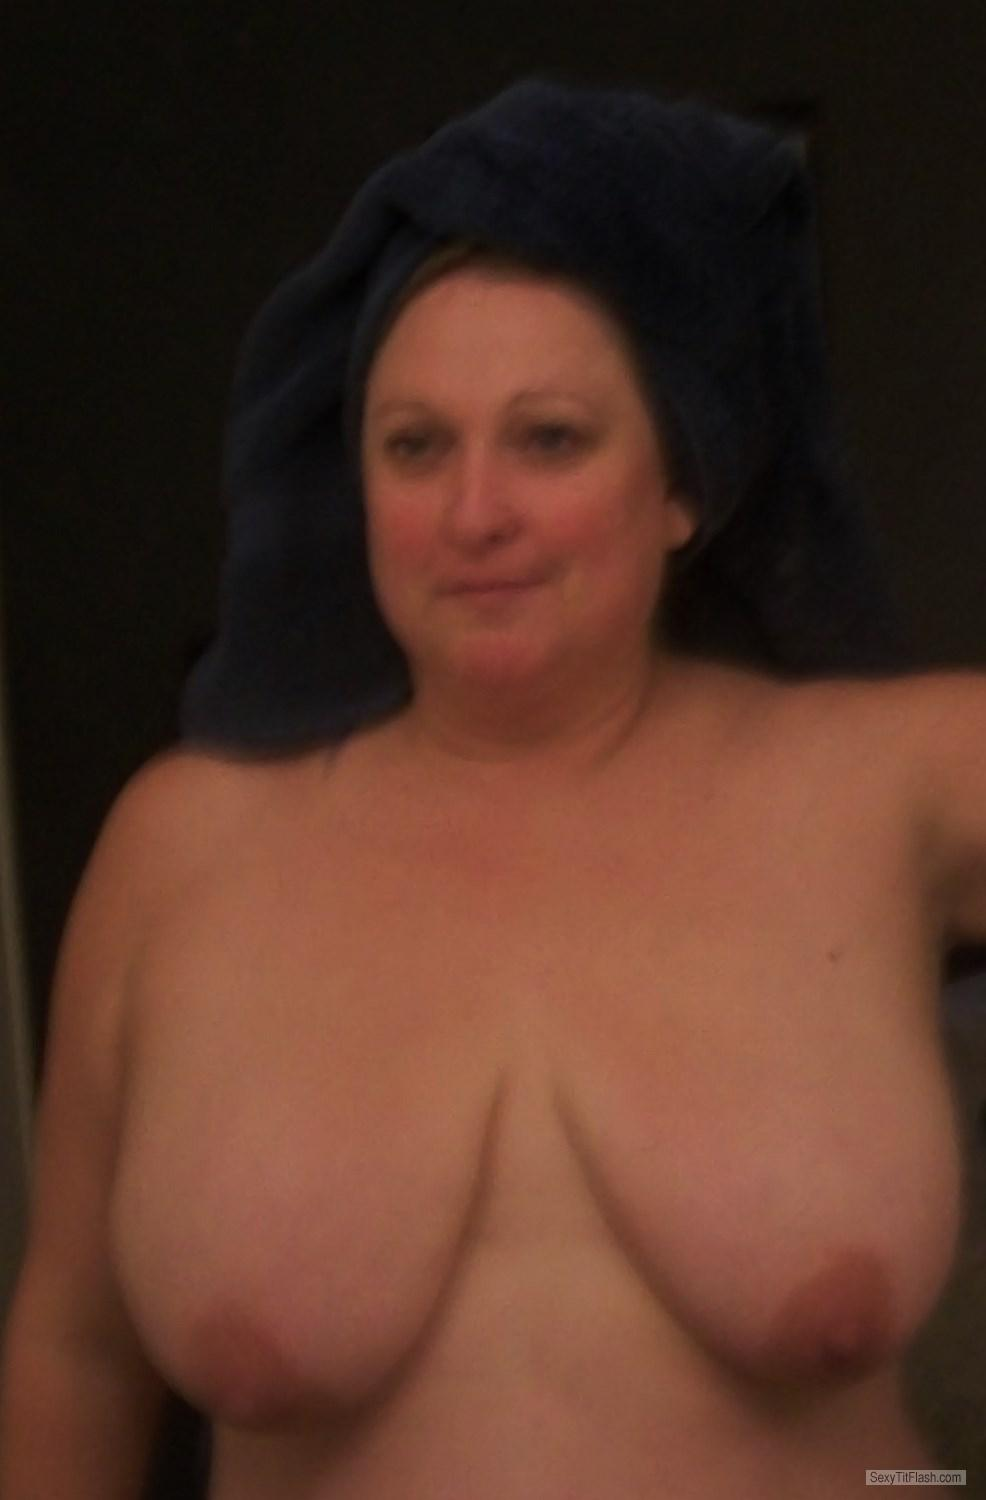 My Extremely big Tits Topless Selfie by KTX